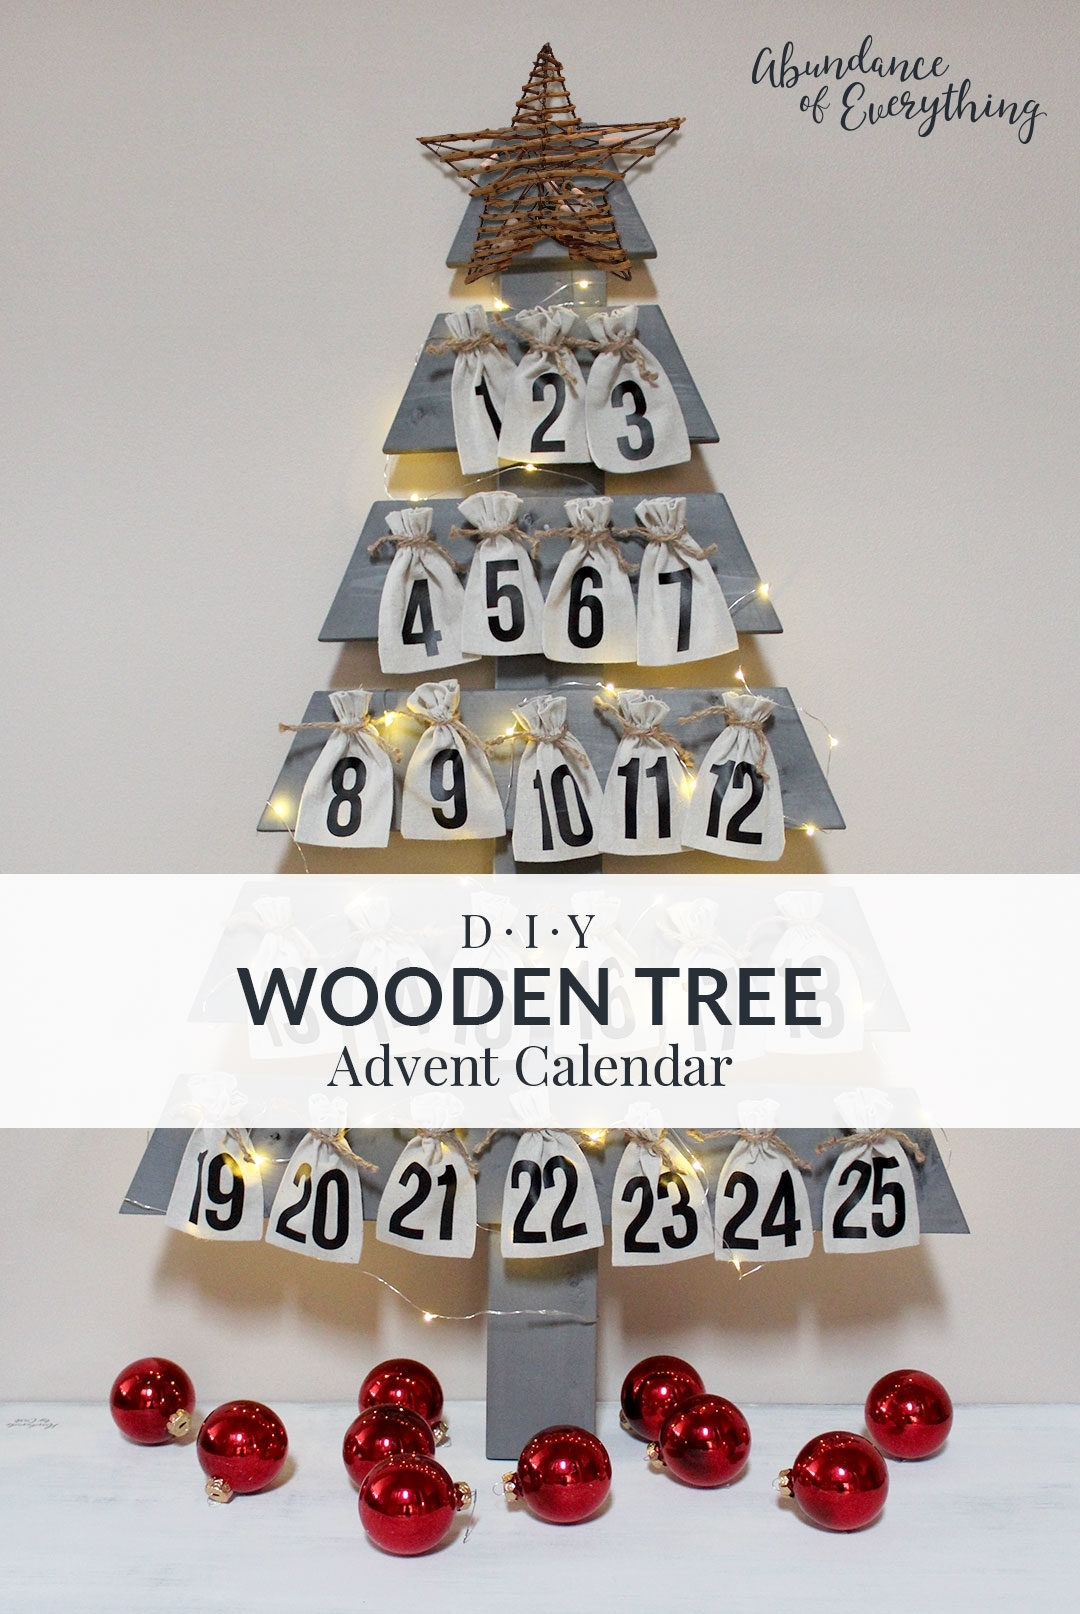 Diy Wooden Tree Advent Calendar - Abundance Of Everything in Create An Advent Calender Wooden